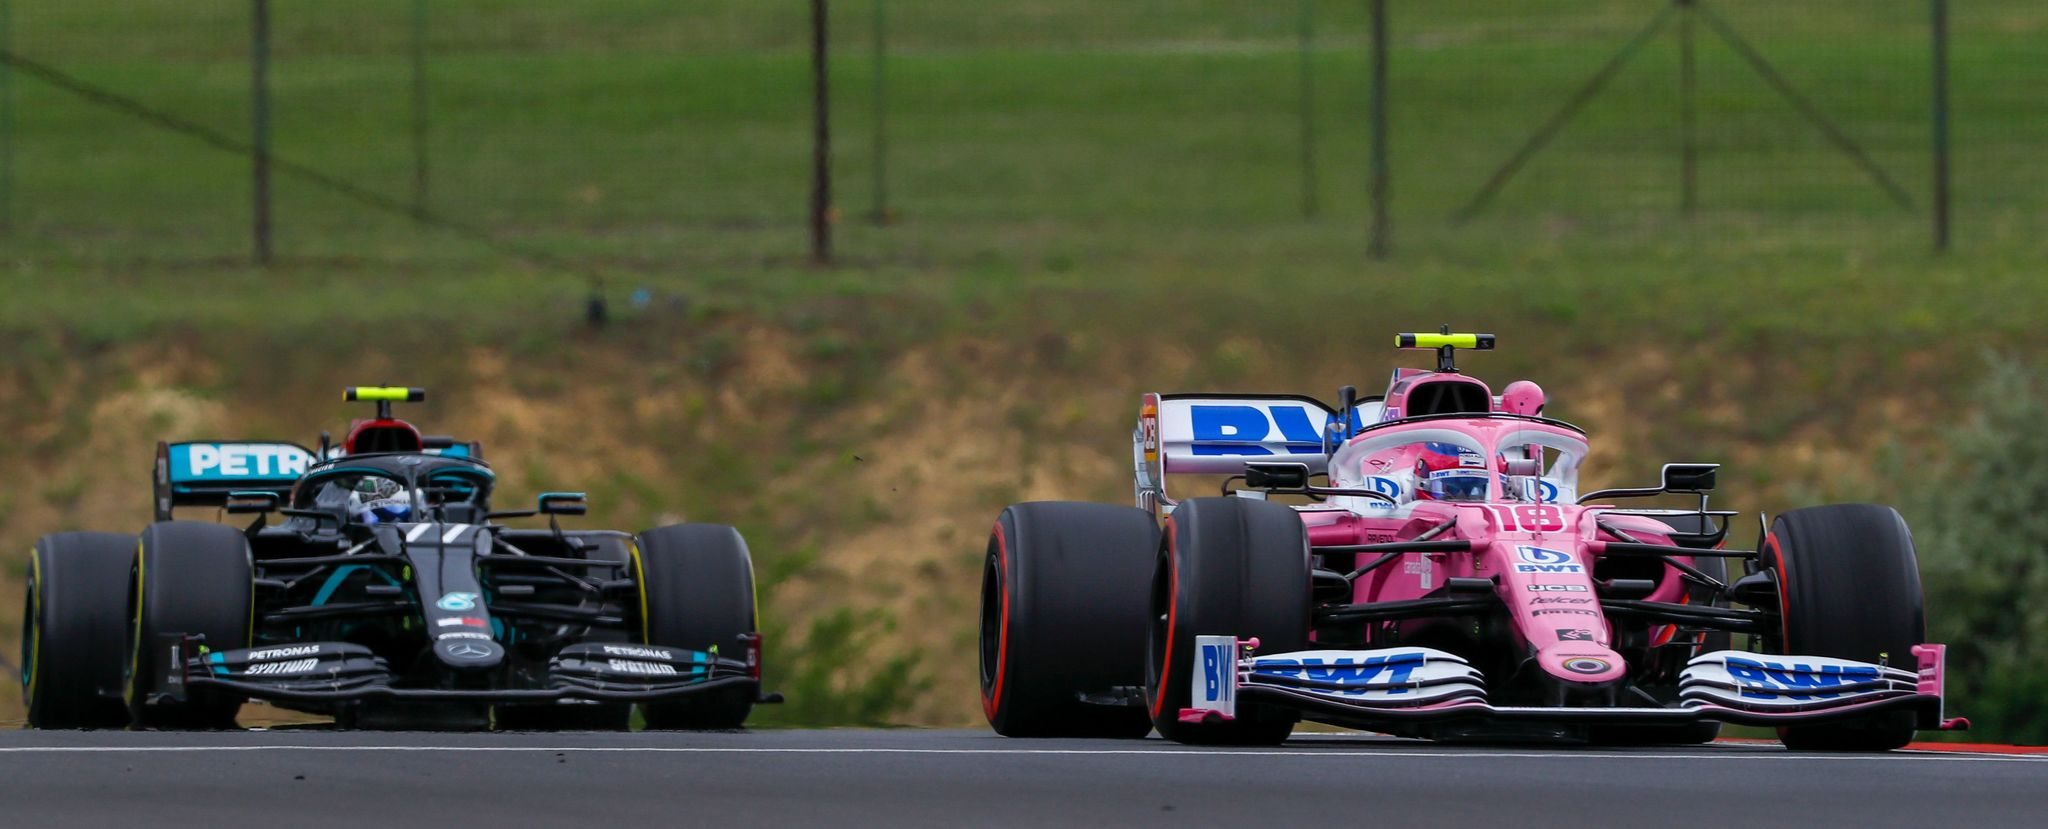 lt;HIT gt;Racing lt;/HIT gt; lt;HIT gt;Point lt;/HIT gt;s Canadian driver Lance Stroll (R) steers his car ahead of lt;HIT gt;Mercedes lt;/HIT gt; Finnish driver Valtteri Bottas during the first practice session for the Formula One Hungarian Grand Prix at the Hungaroring circuit in Mogyorod near Budapest, Hungary, on July 17, 2020. (Photo by LEONHARD FOEGER / various sources / AFP)